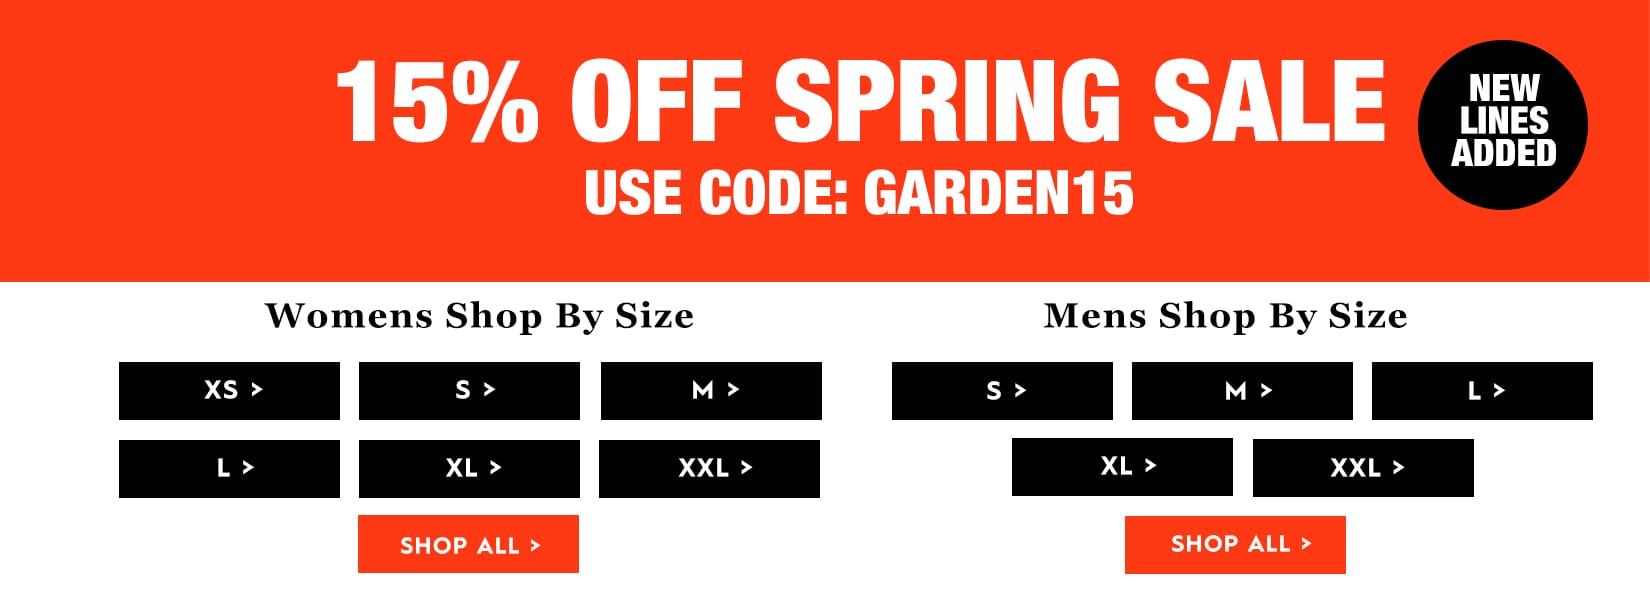 Spring Sale extra 15% off